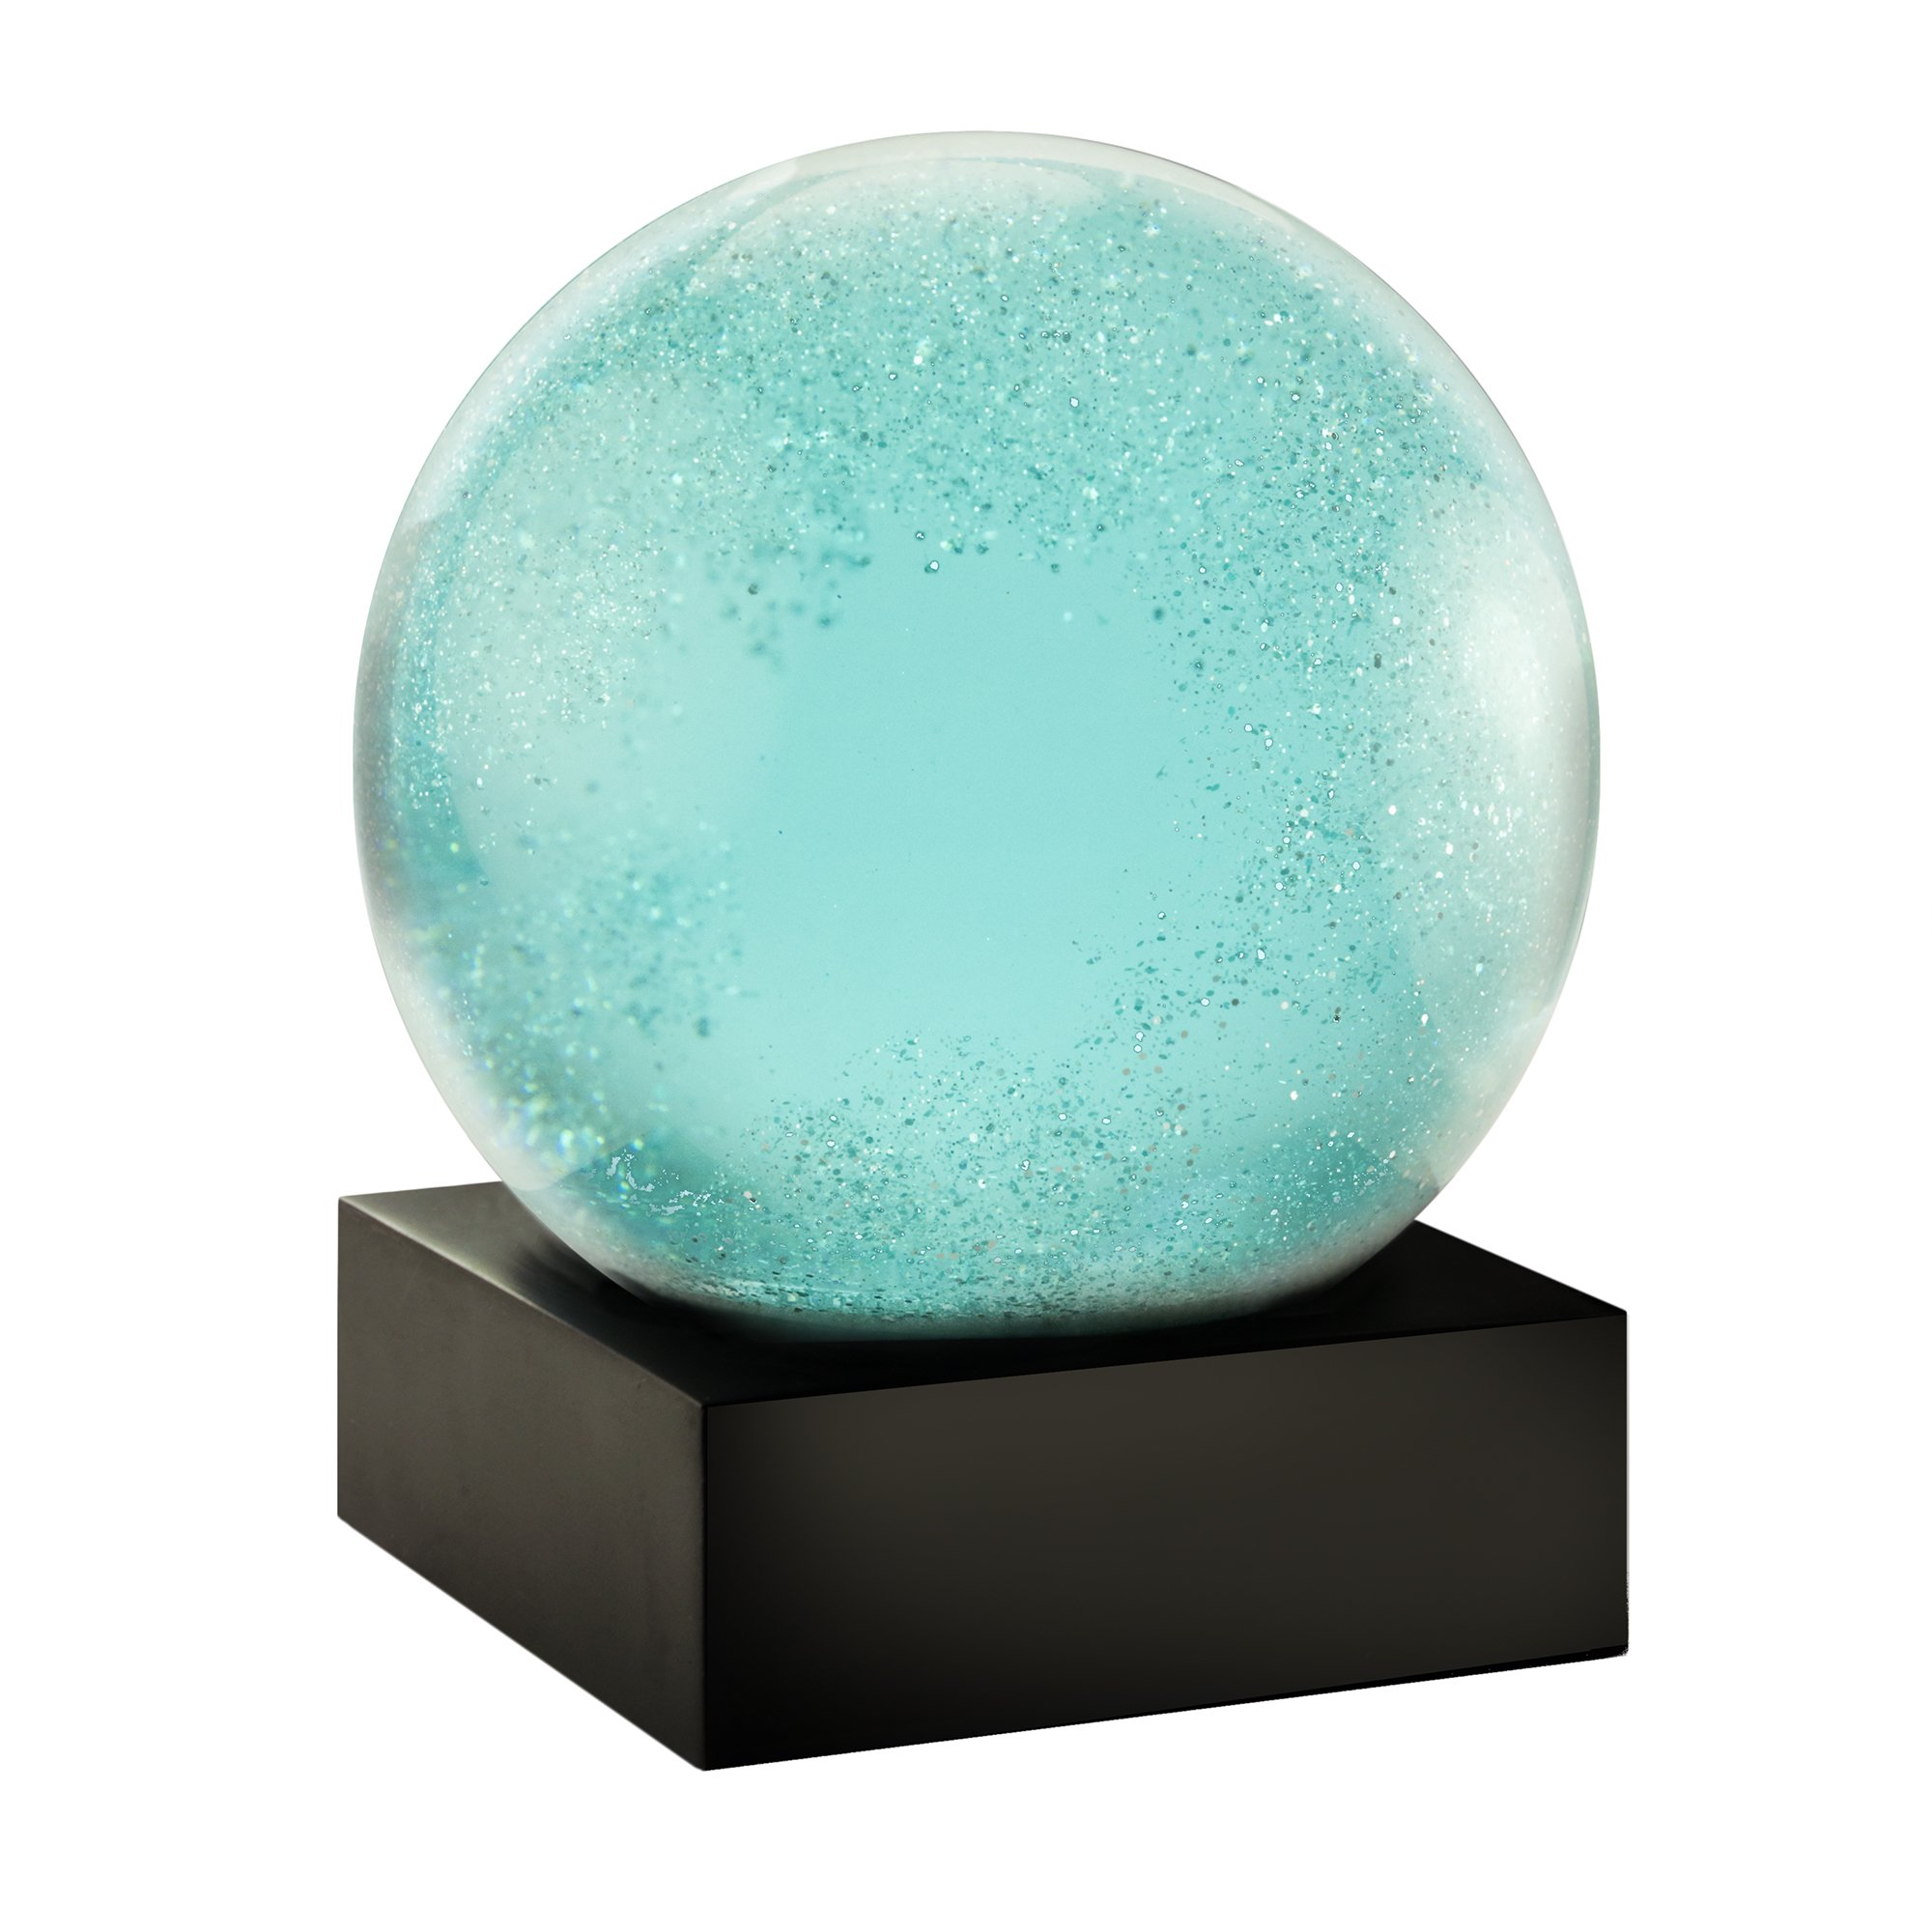 CoolSnowGlobes Moonlight Snow Globe by CoolSnowGlobes